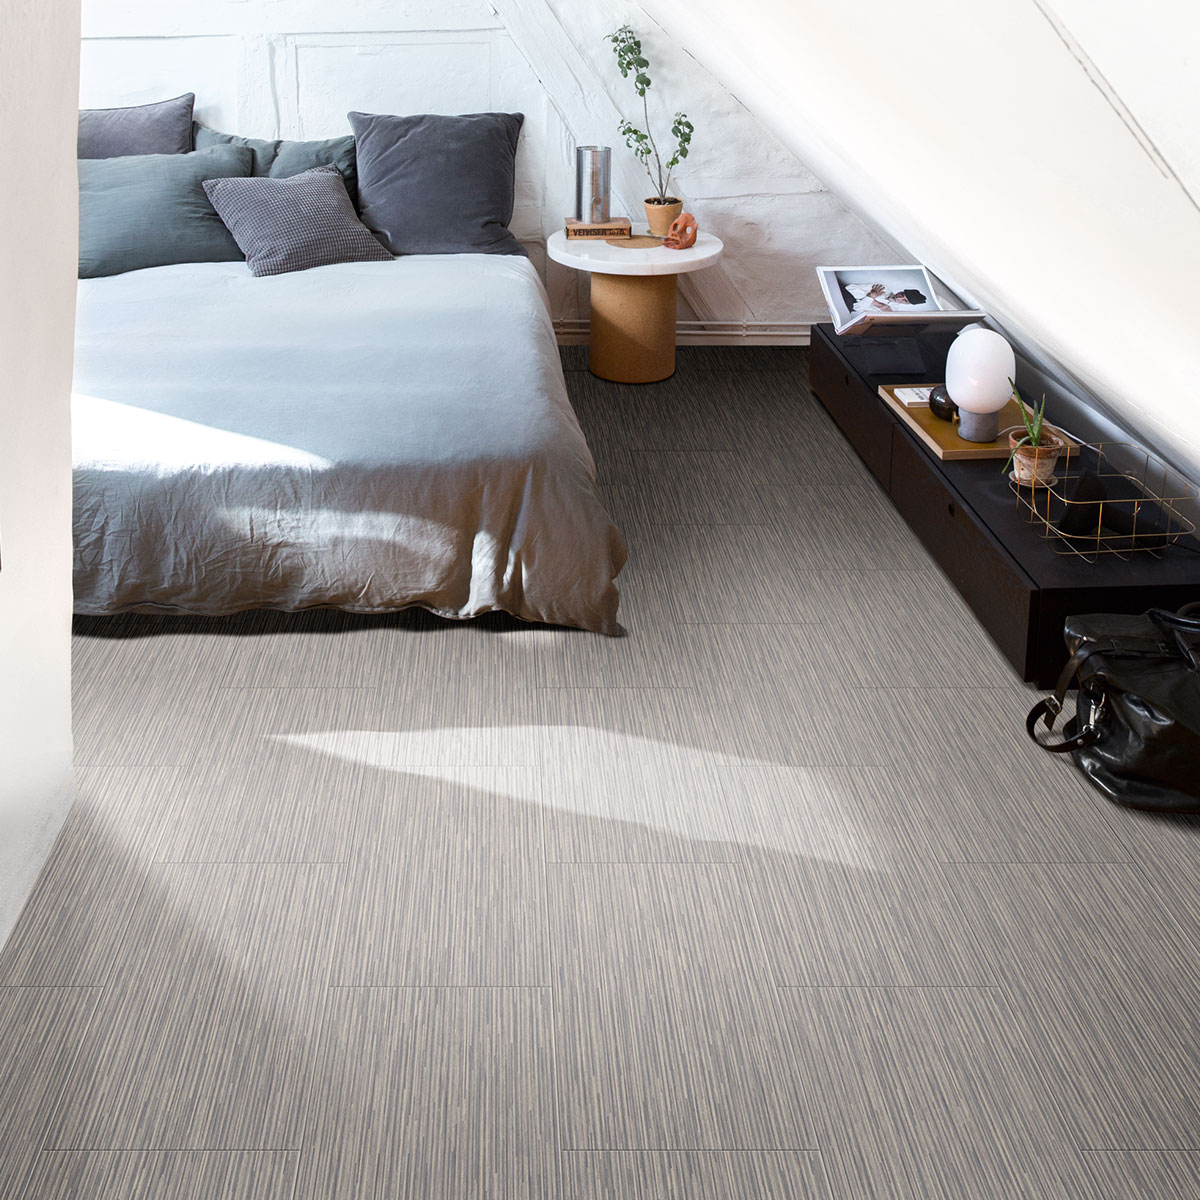 Luxury Vinyl Flooring can be easily laid over an existing floor